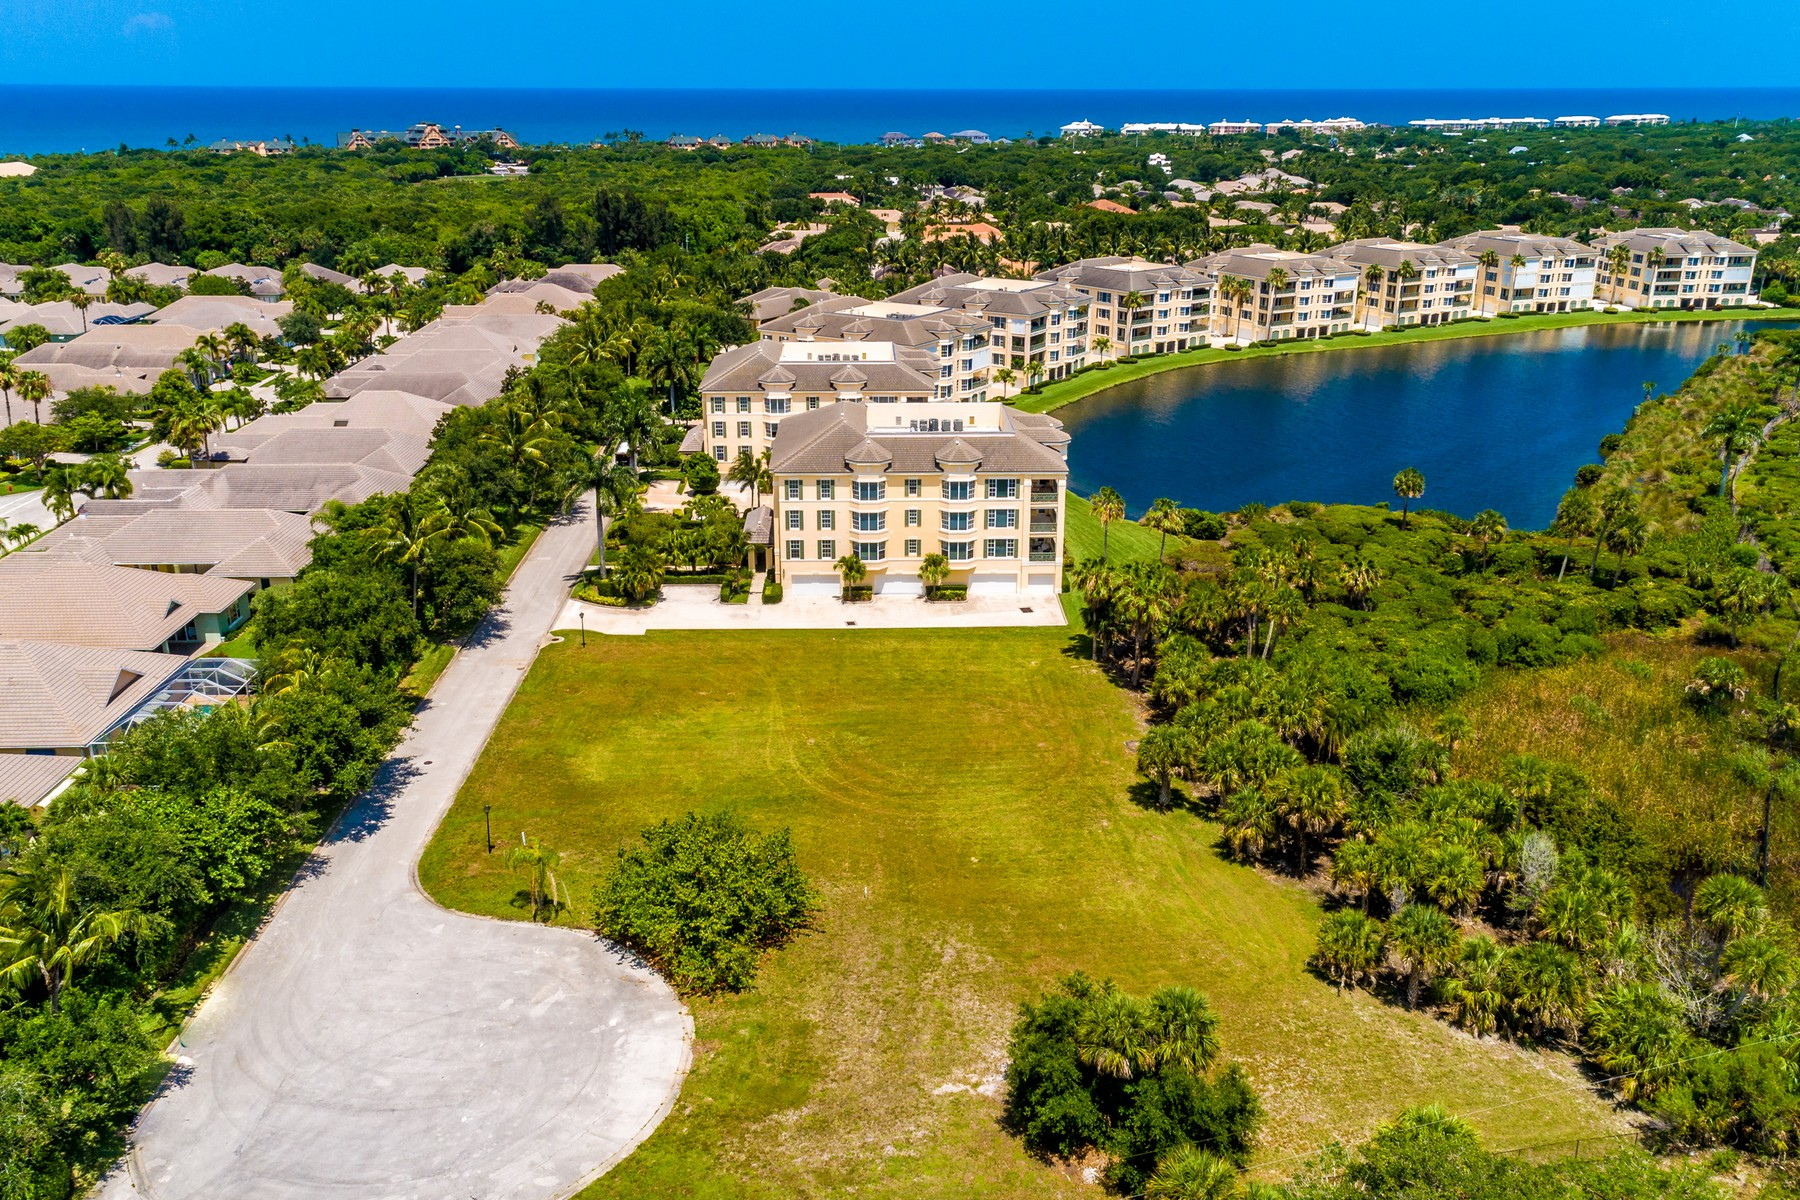 Property 용 매매 에 Spectacular Direct Riverfront Condo Sites 0 Somerset Bay Lane Vero Beach, 플로리다 32963 미국